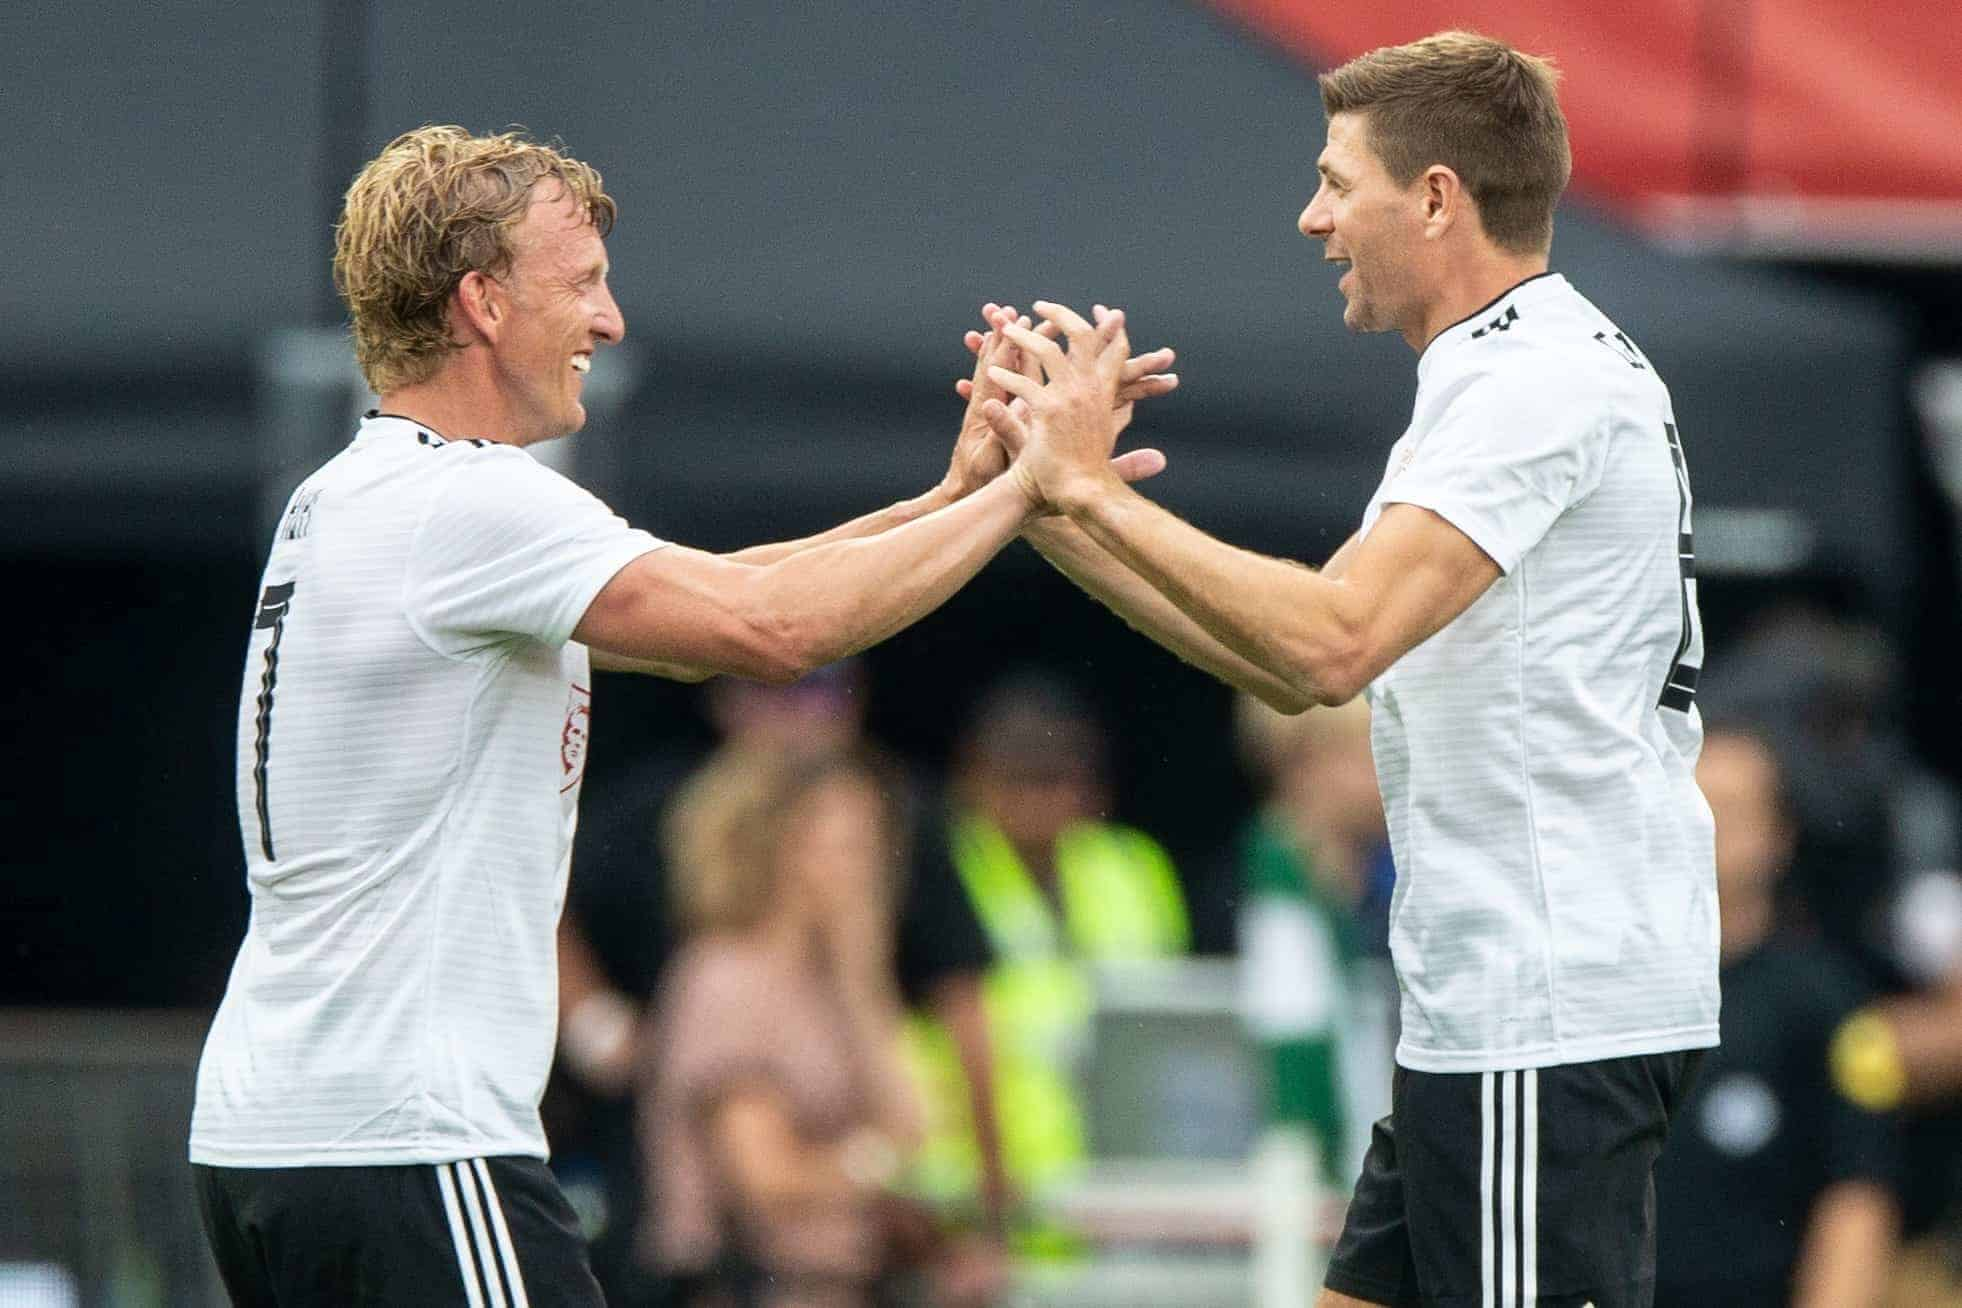 Dirk Kuyt of friends, Steven Gerrard of Friendsteam during the Dirk Kuyt Testimonial match at stadium de Kuip on May 27, 2018 in Rotterdam, the Netherlands